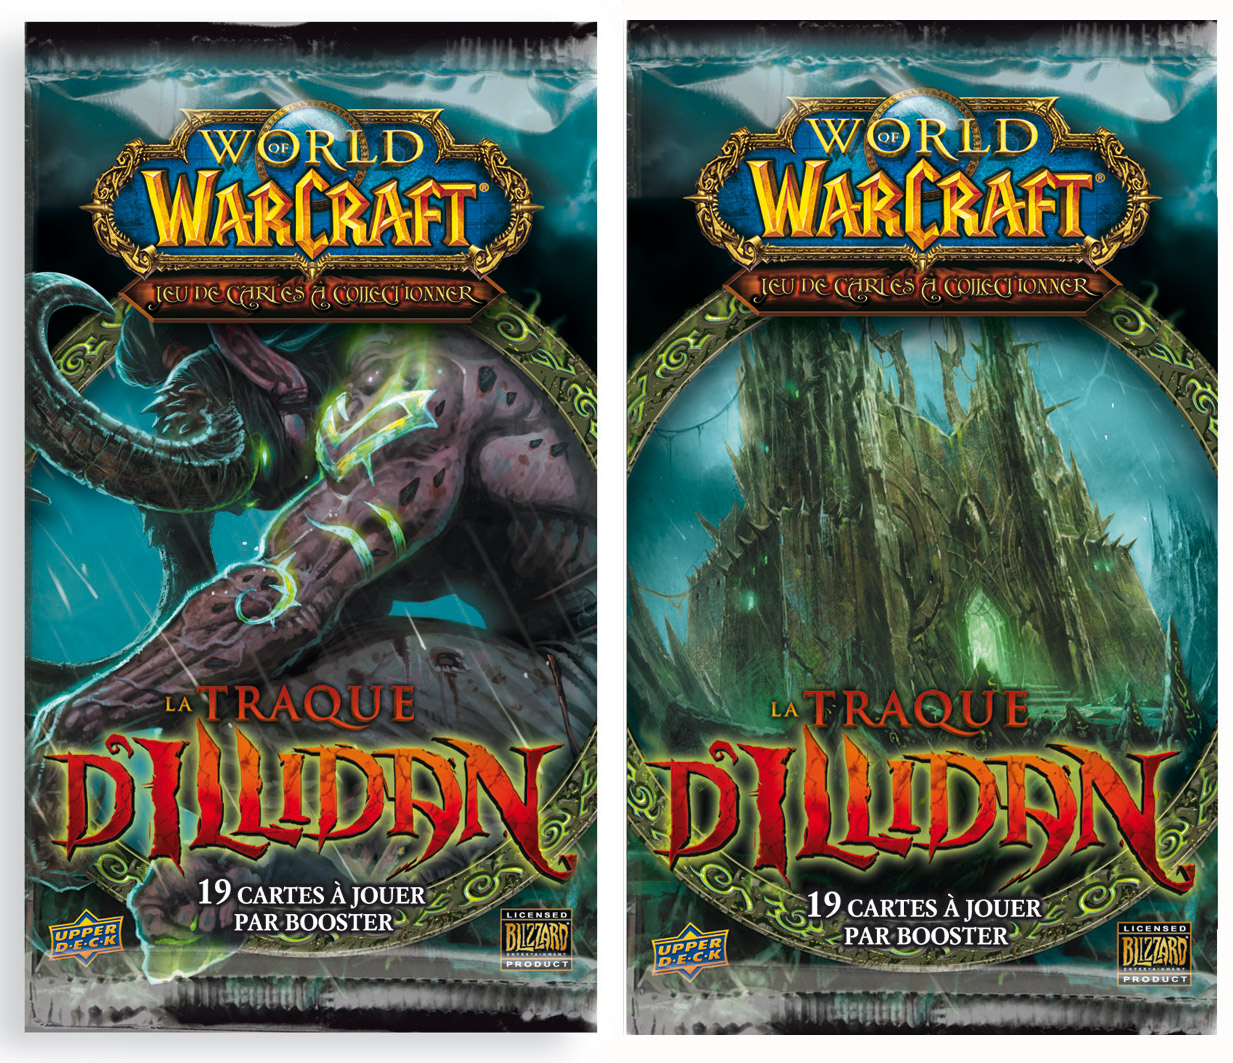 Image des deux boosters de l'extension La Traque d'Illidan, du jeu de cartes à collectionner WoW.